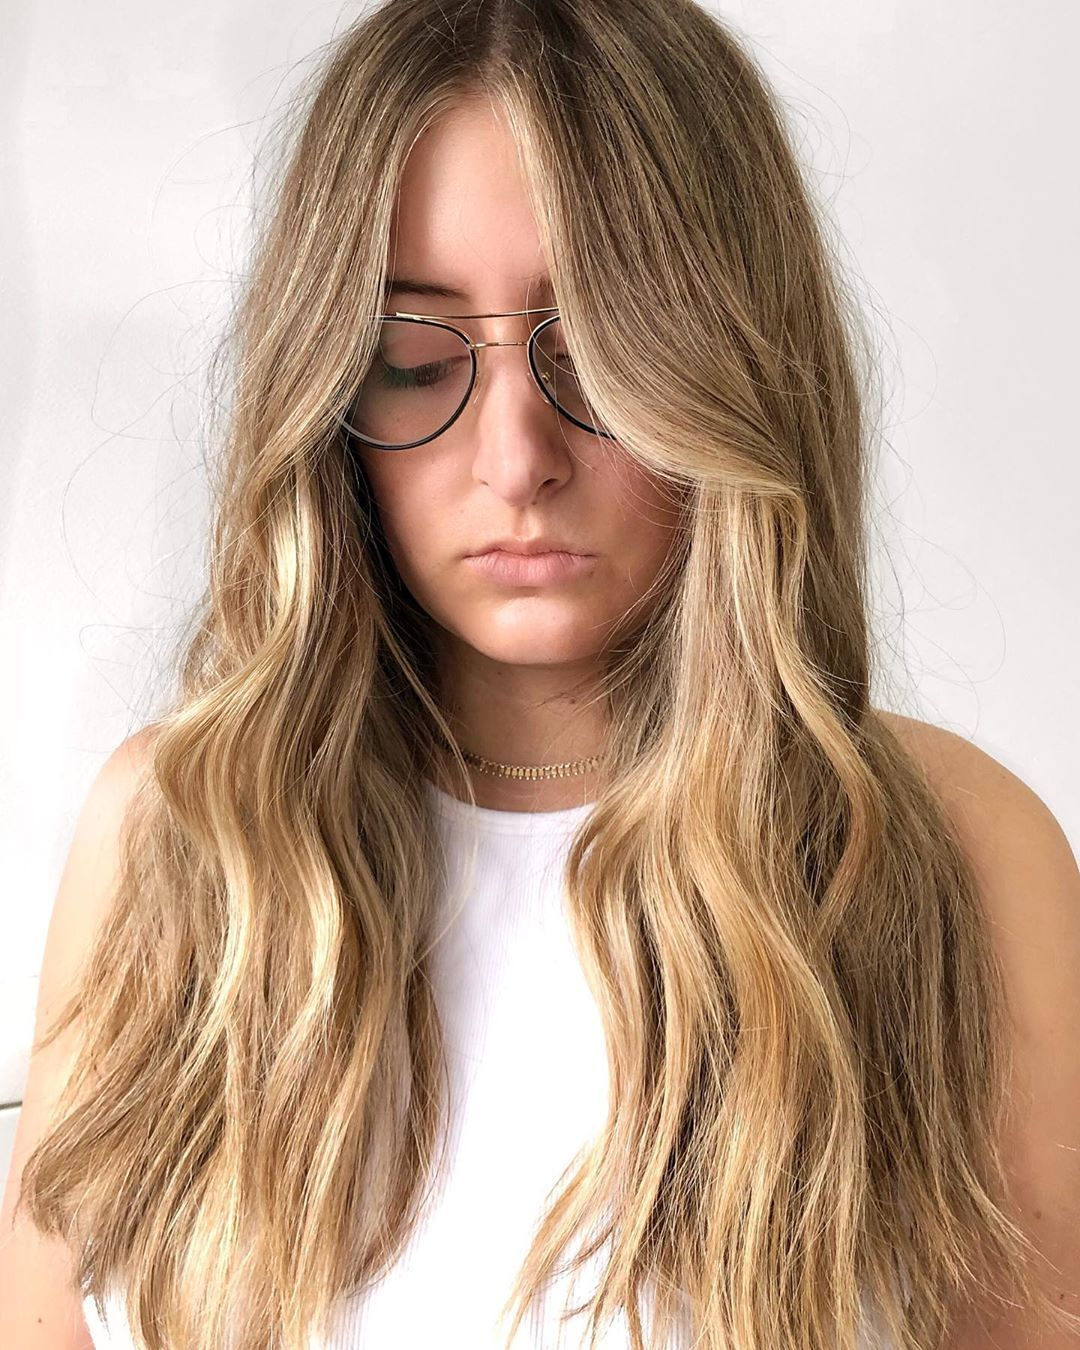 """HALEY HERBST - HAIR COLORIST on Instagram: """"I've been trying to keep focused on the positive things that I can control, and one thing is for certain - I will be coming out of this…"""""""